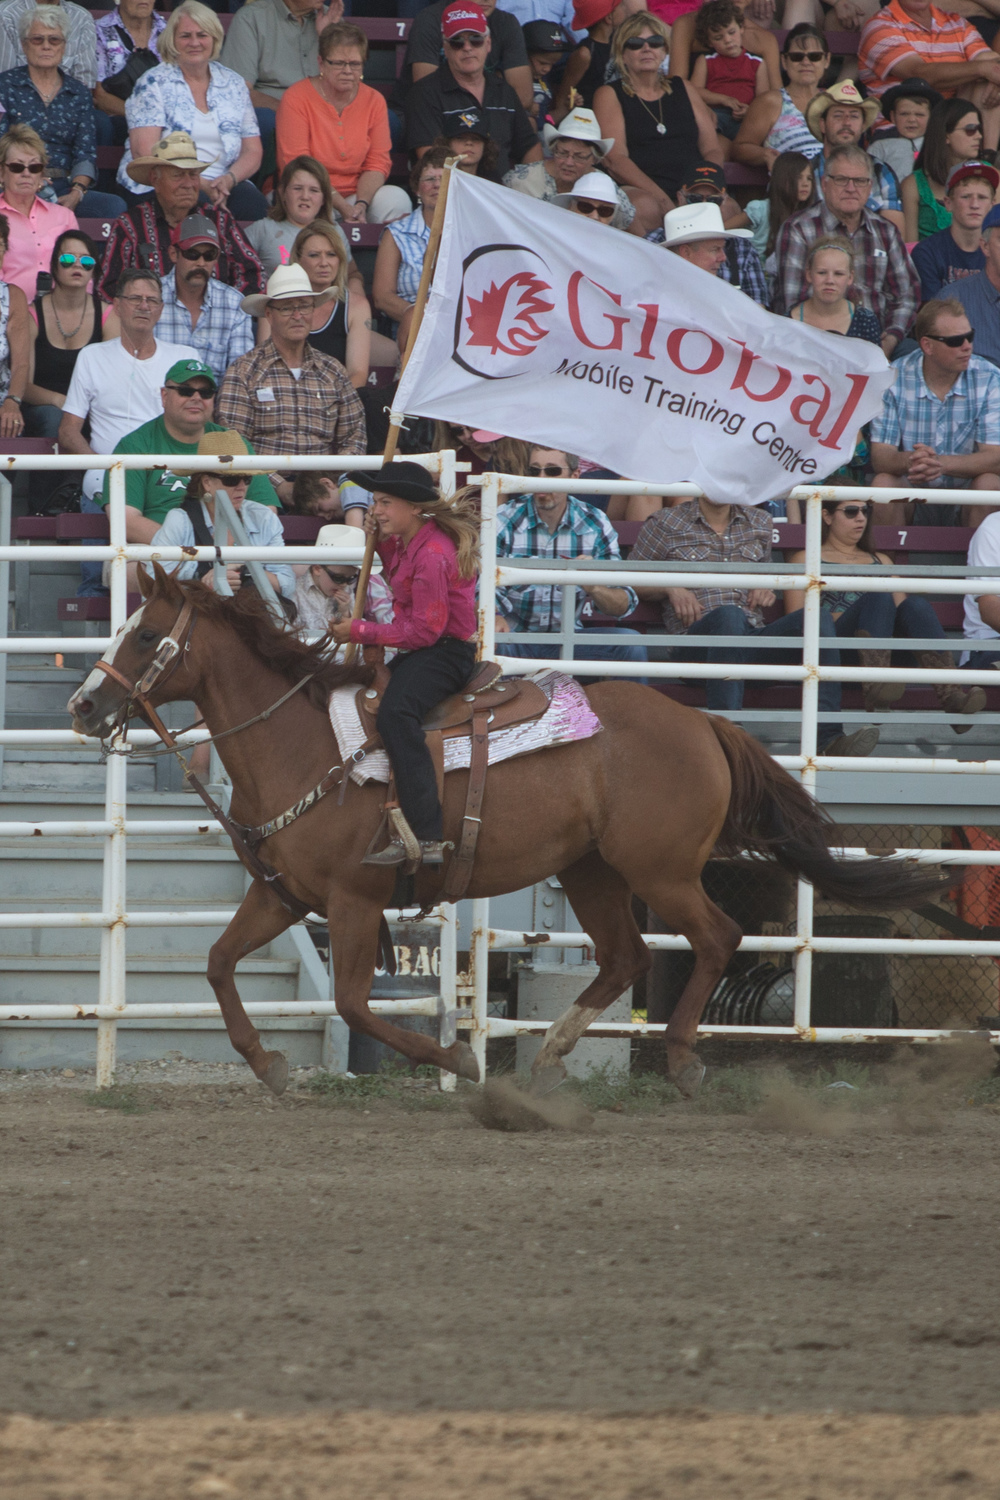 A big thank you to  Global Training  for being a 2015 Strathmore Stampede Gold Sponsor!